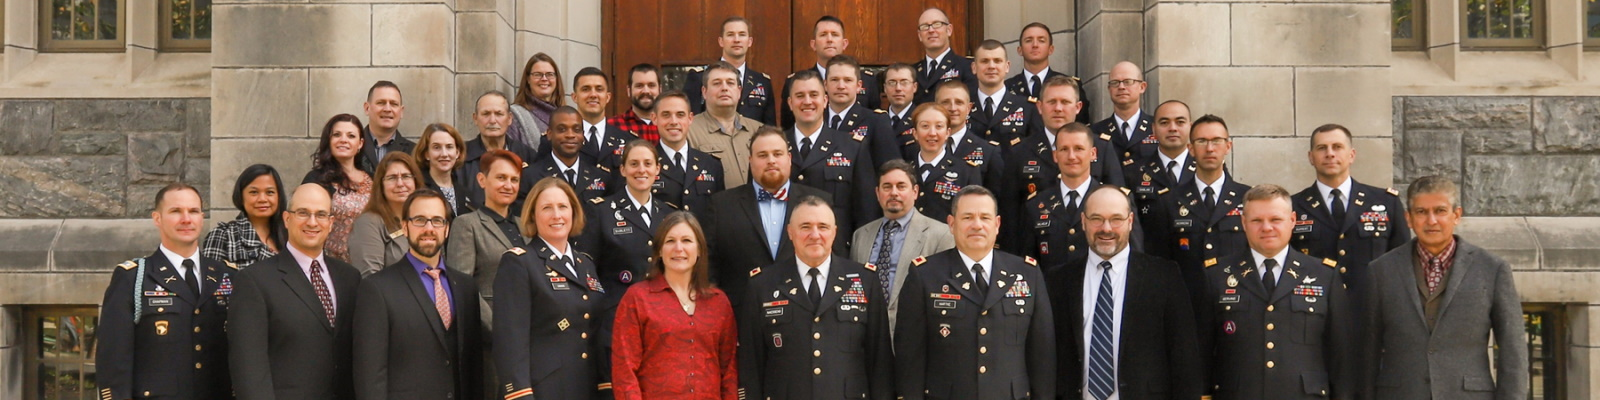 All Staff and Faculty